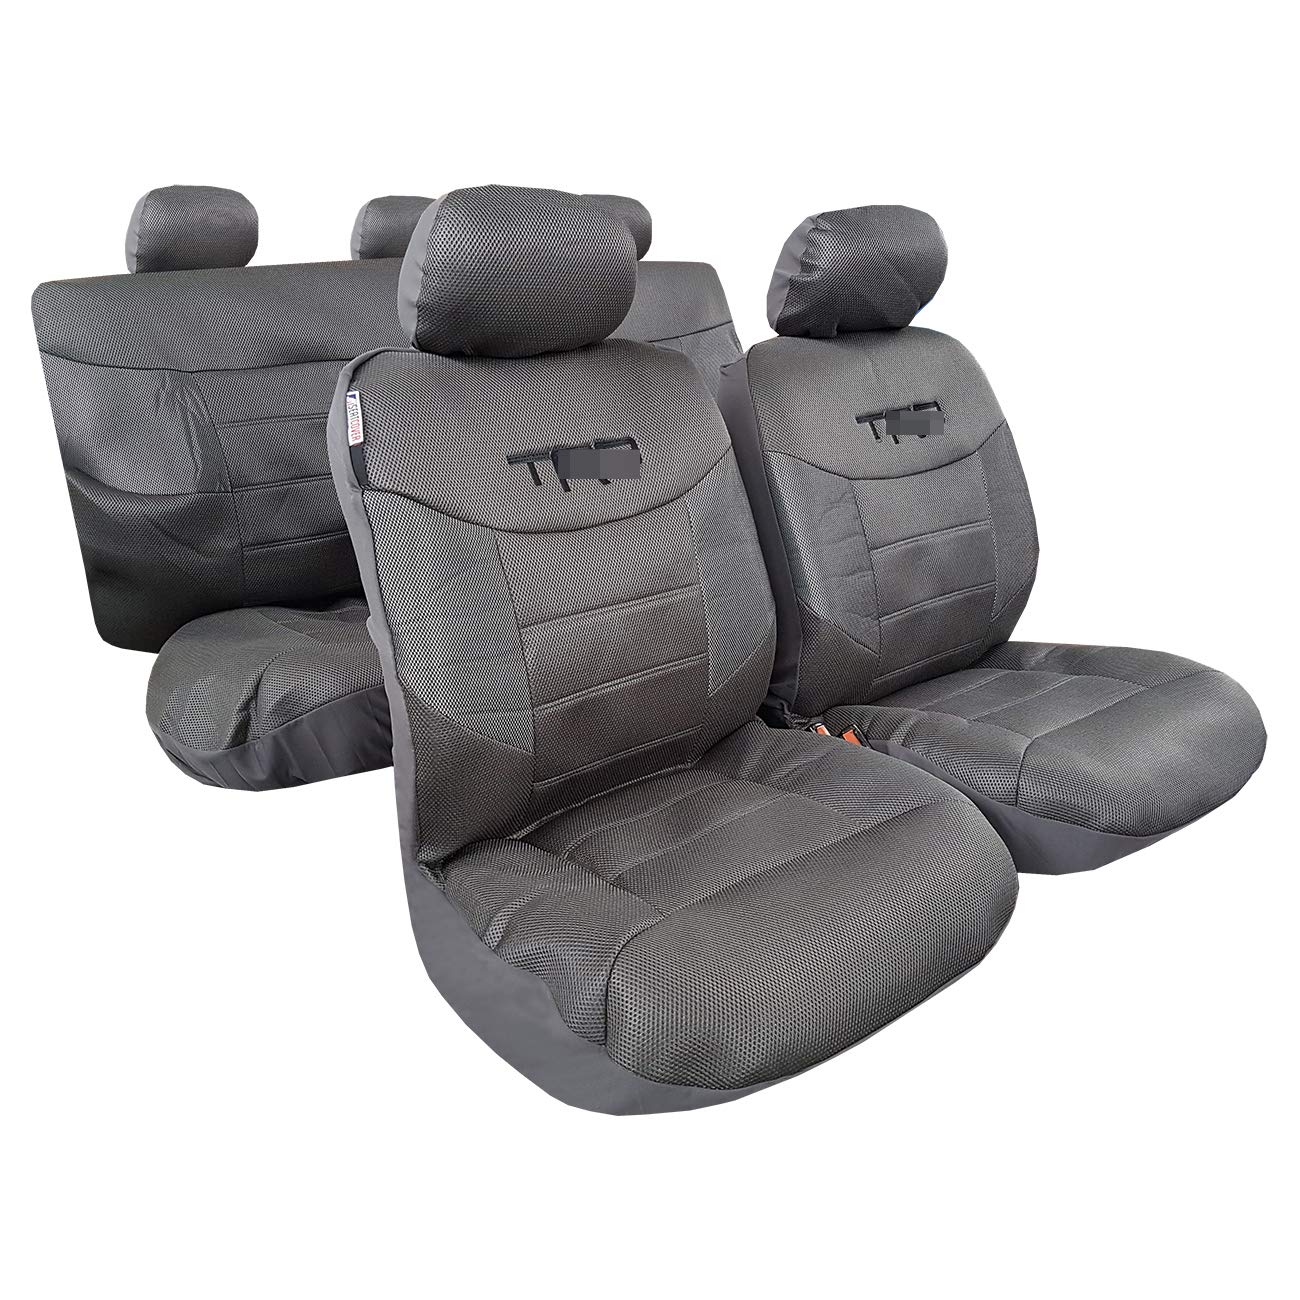 Fine Amazon Com Itailormaker Black Carbon Seat Covers 9Pcs Full Forskolin Free Trial Chair Design Images Forskolin Free Trialorg